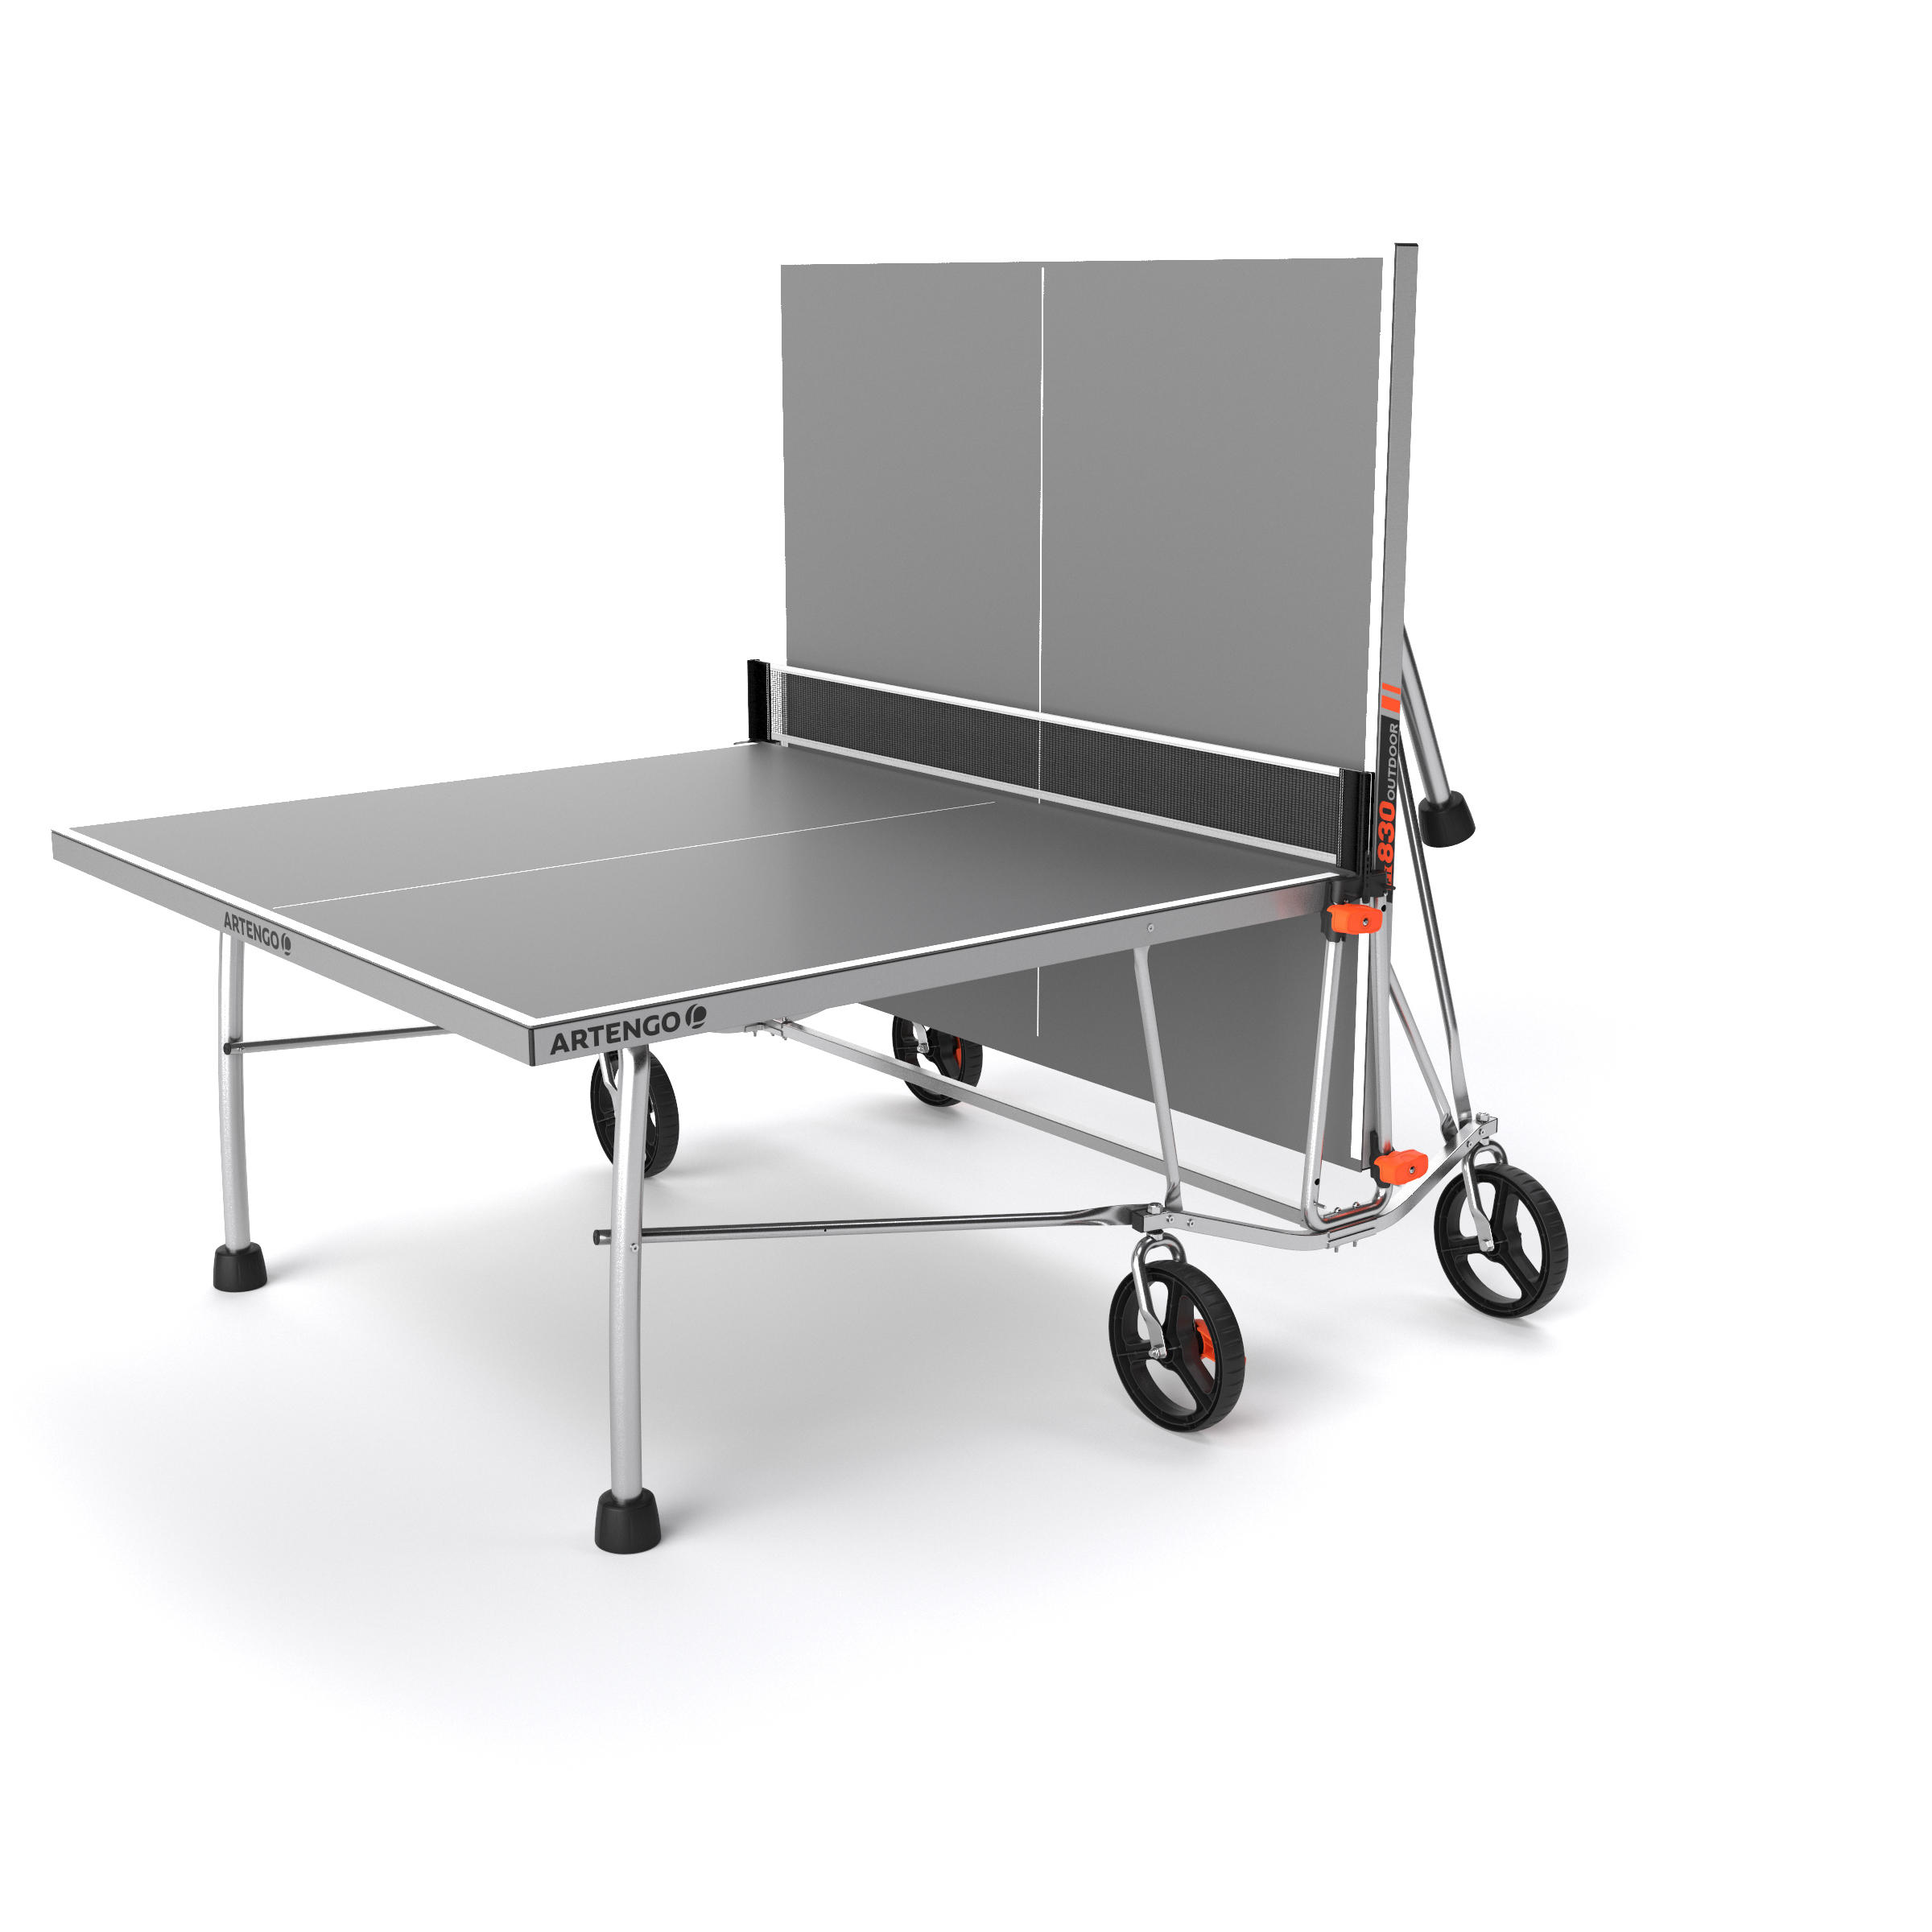 PPT 530 Outdoor Free Table Tennis Table